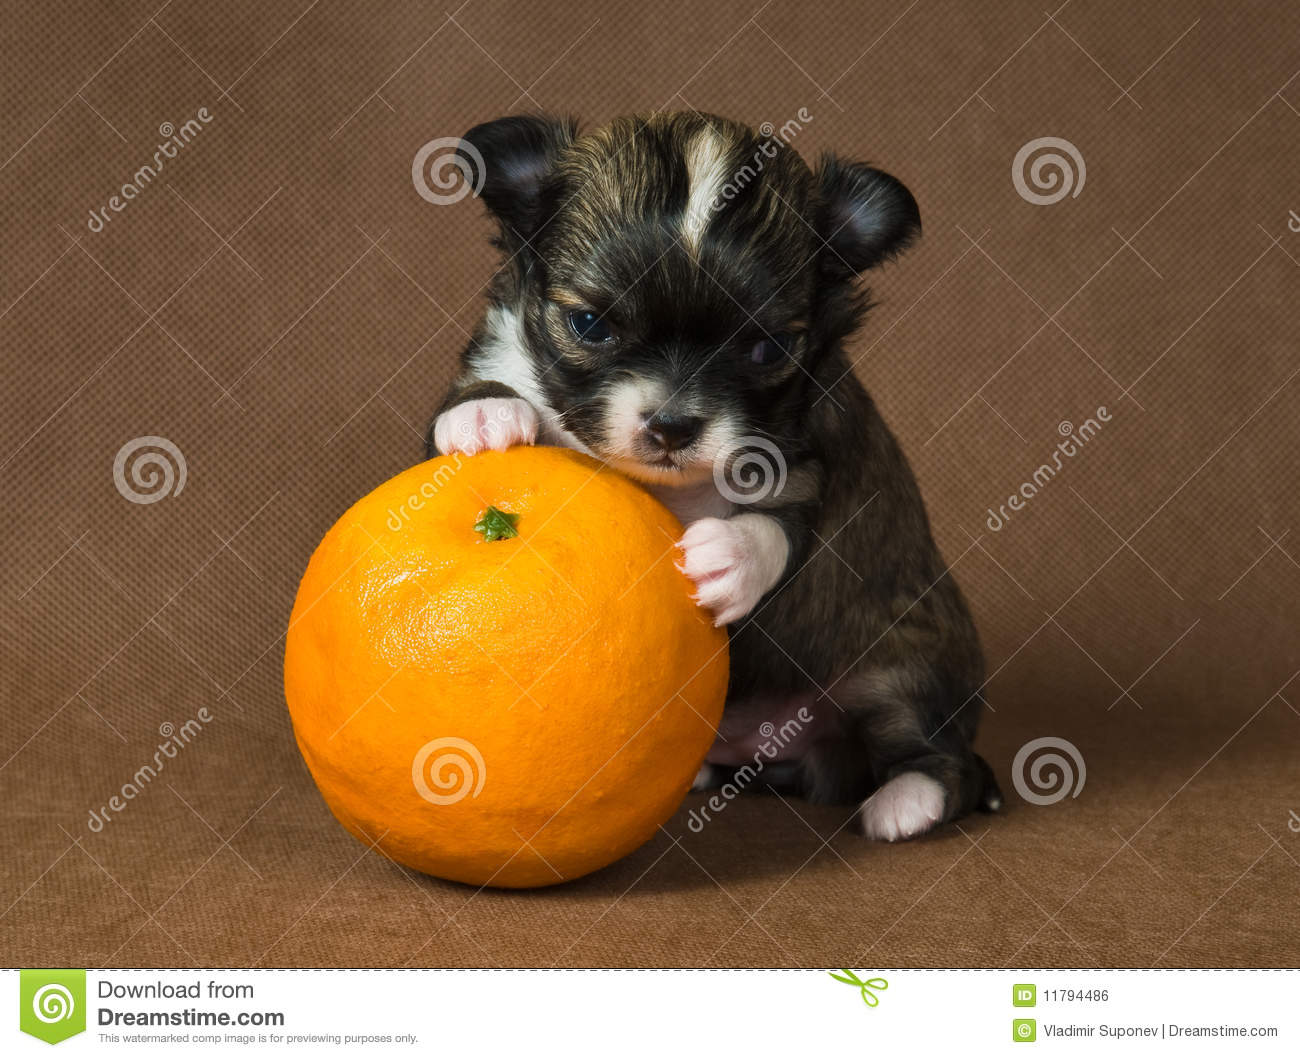 Puppy chihuahua with an orange